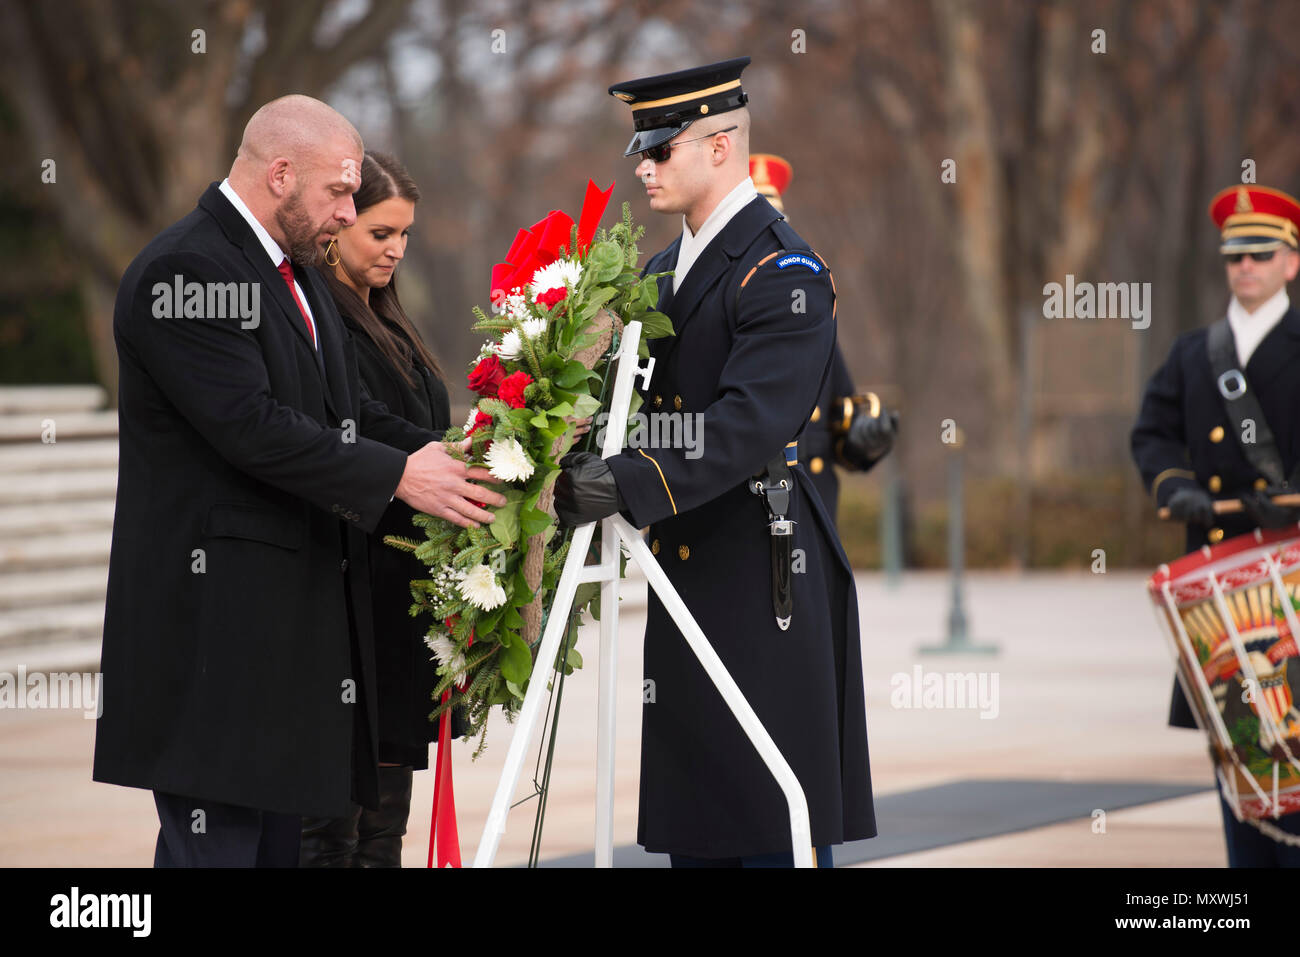 """From the left, WWE Paul """"Triple H"""" Levesque and WWE Chief Brand Officer Stephanie McMahon place a wreath at the Tomb of the Unknown Soldier in Arlington National Cemetery, Dec. 13, 2016, in Arlington, Va. WWE is scheduled to host its 14th annual Tribute to the Troops, in partnership with the USO Metro, in Washington, D.C. (U.S. Army photo by Rachel Larue/Arlington National Cemetery/released) - Stock Image"""